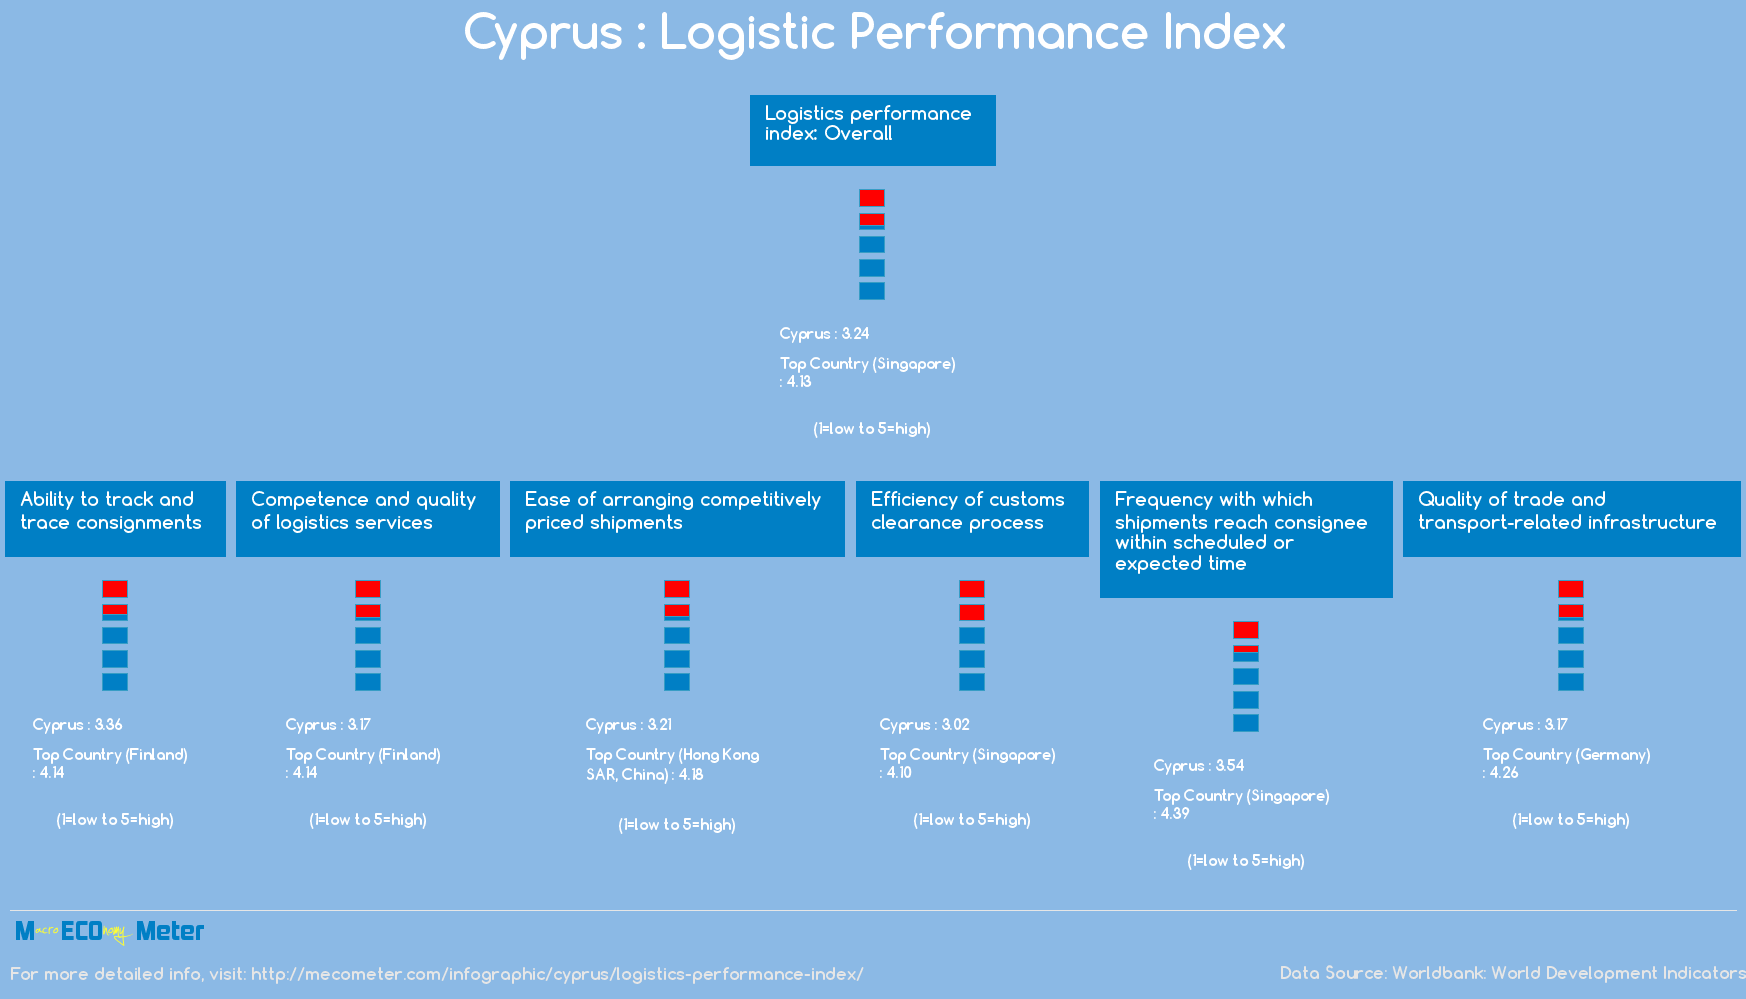 Cyprus : Logistic Performance Index